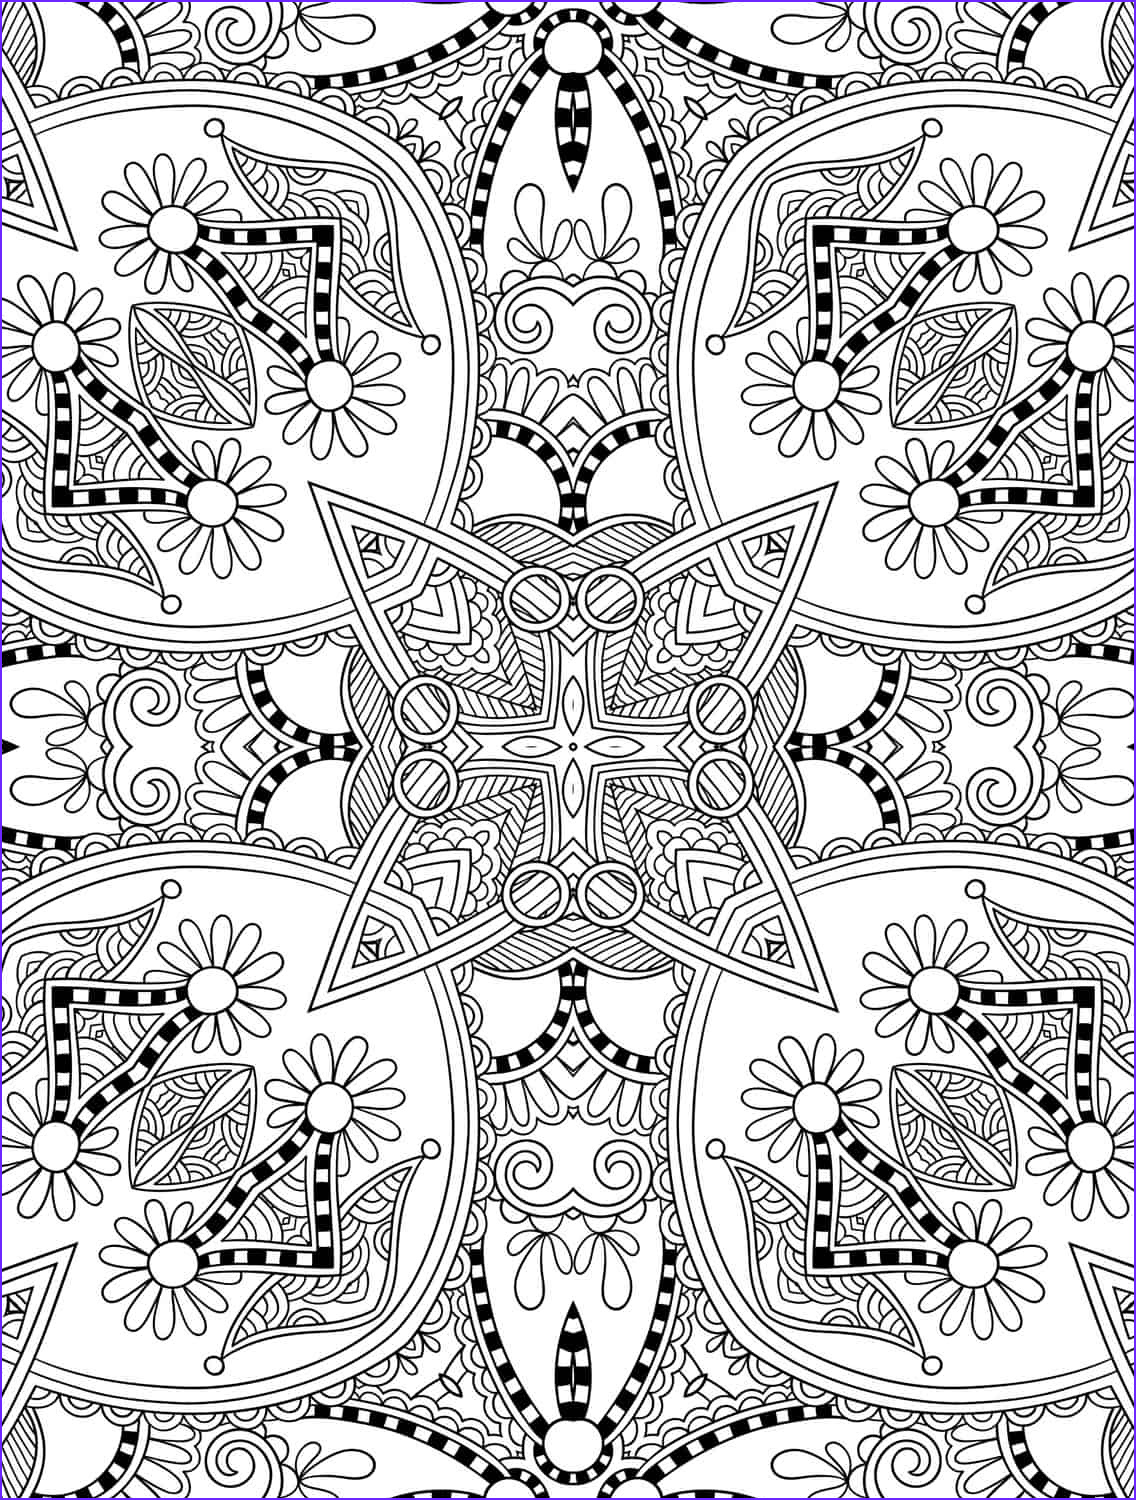 Free Printable Coloring Pages for Adults Only Best Of Collection 10 Free Printable Holiday Adult Coloring Pages